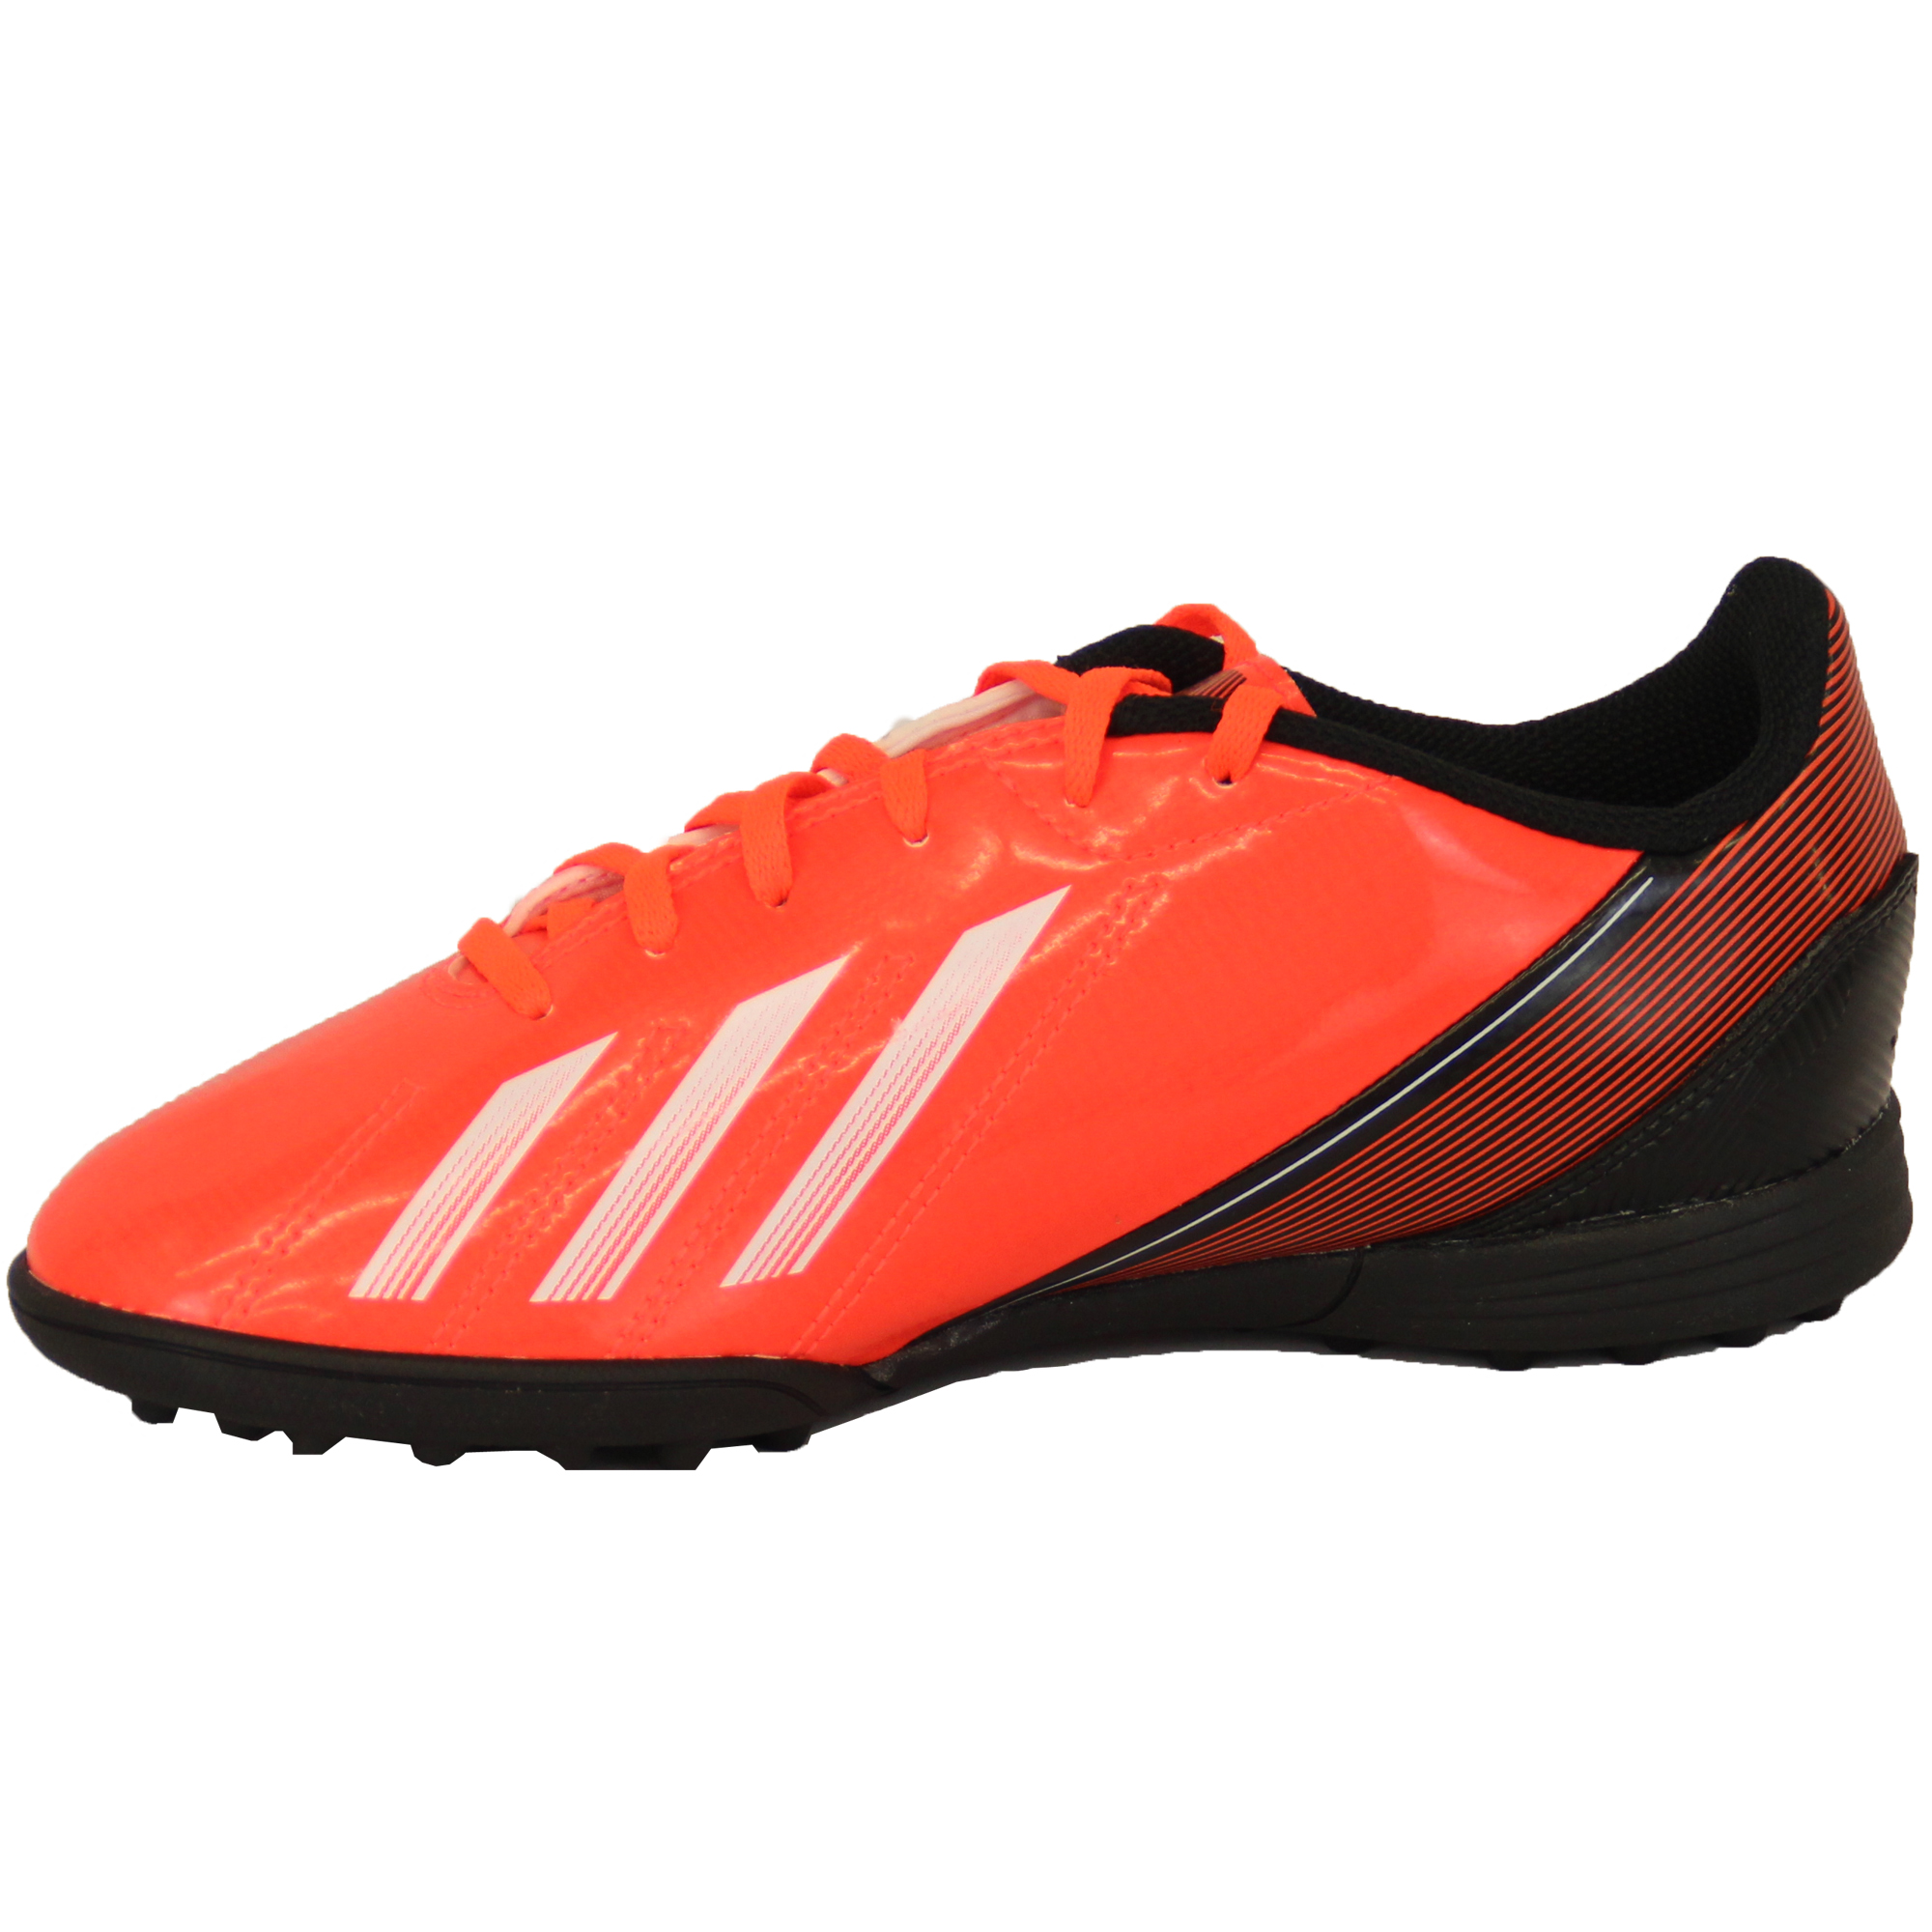 Boys-ADIDAS-Trainers-Kids-Football-Soccer-Astro-Turf-Shoes-Lace-Up-Neon-Youth thumbnail 8